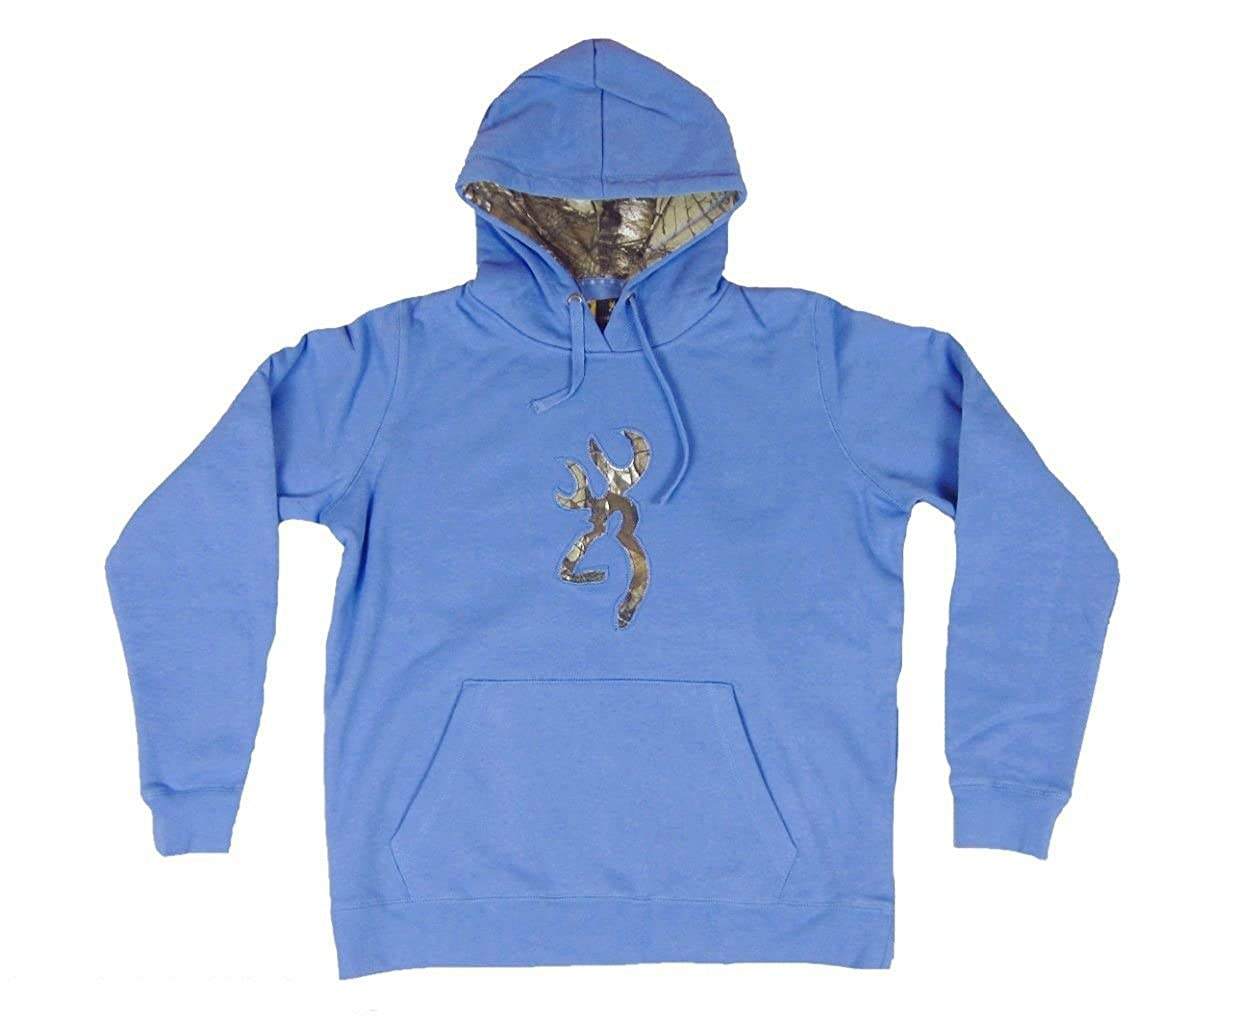 60274fc380a45 Womens Browning Buckmark Hoodie Realtree Xtra Camo Sweatshirt Cornflower at  Amazon Women's Clothing store: